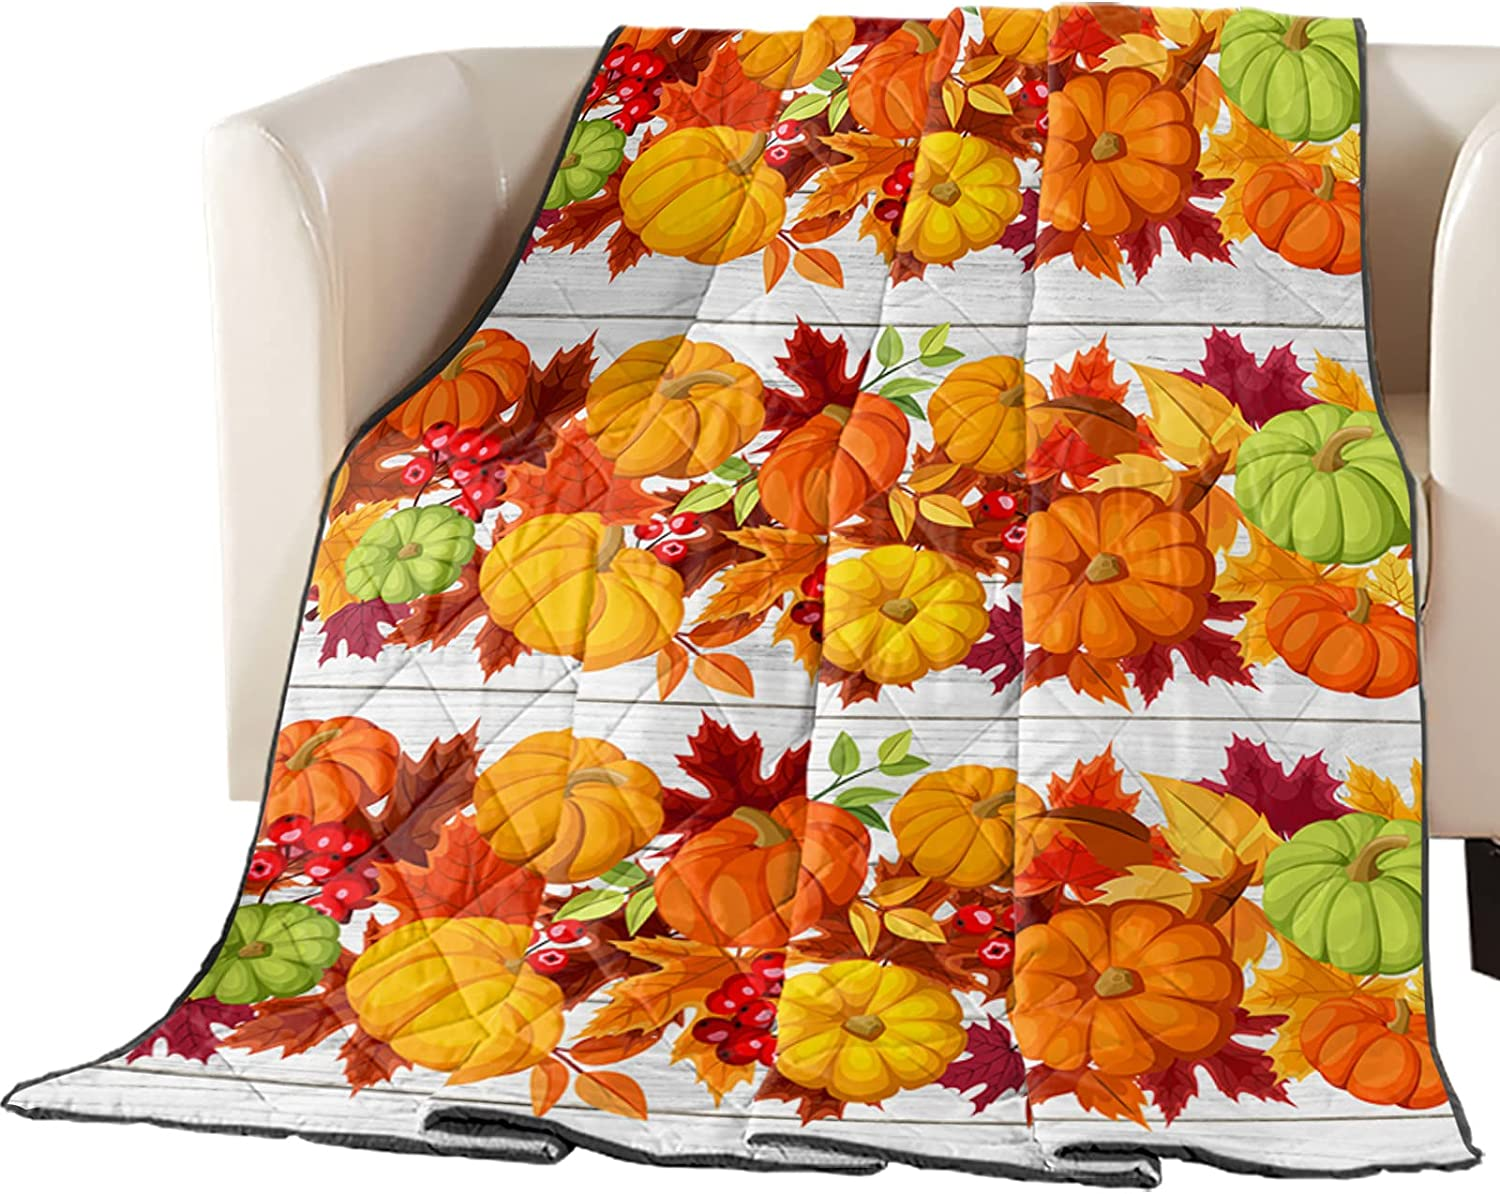 Luck Sky Premium Coverlet Diamond Quilted Stitched Save money Fall 90x102in Long Beach Mall